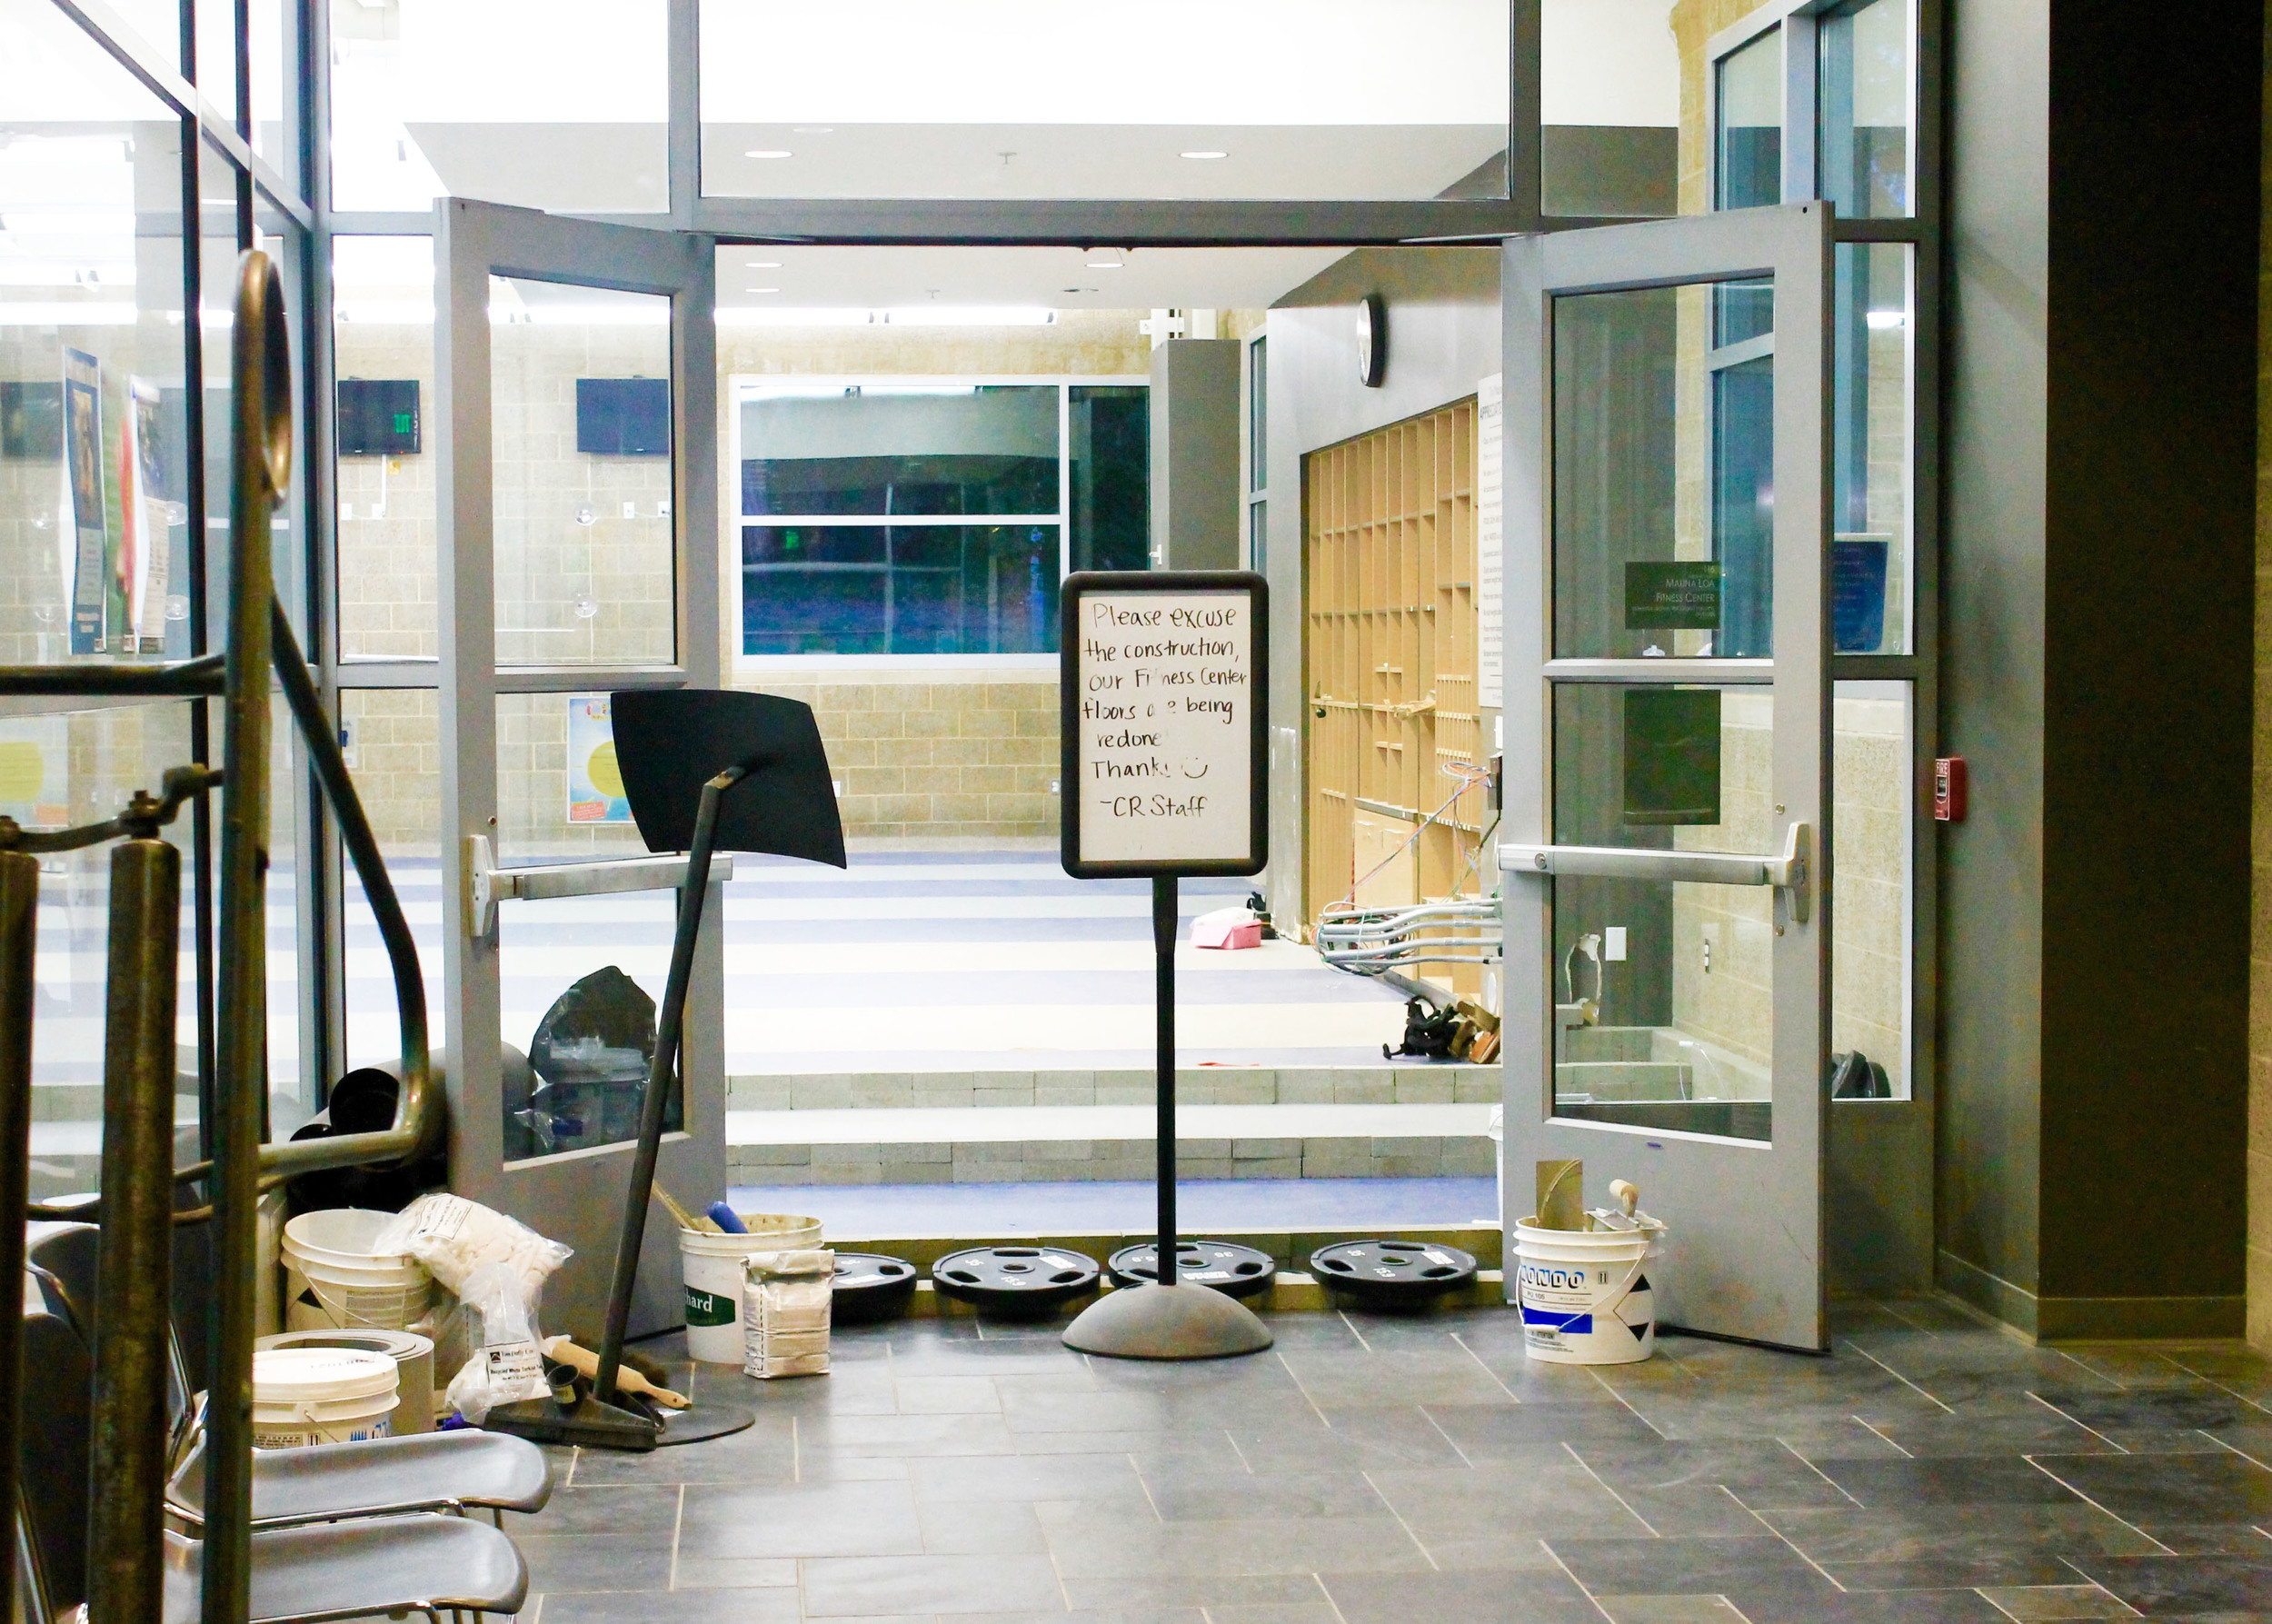 Sonoma State University's Recreation Center remodel will be finished Sept. 10